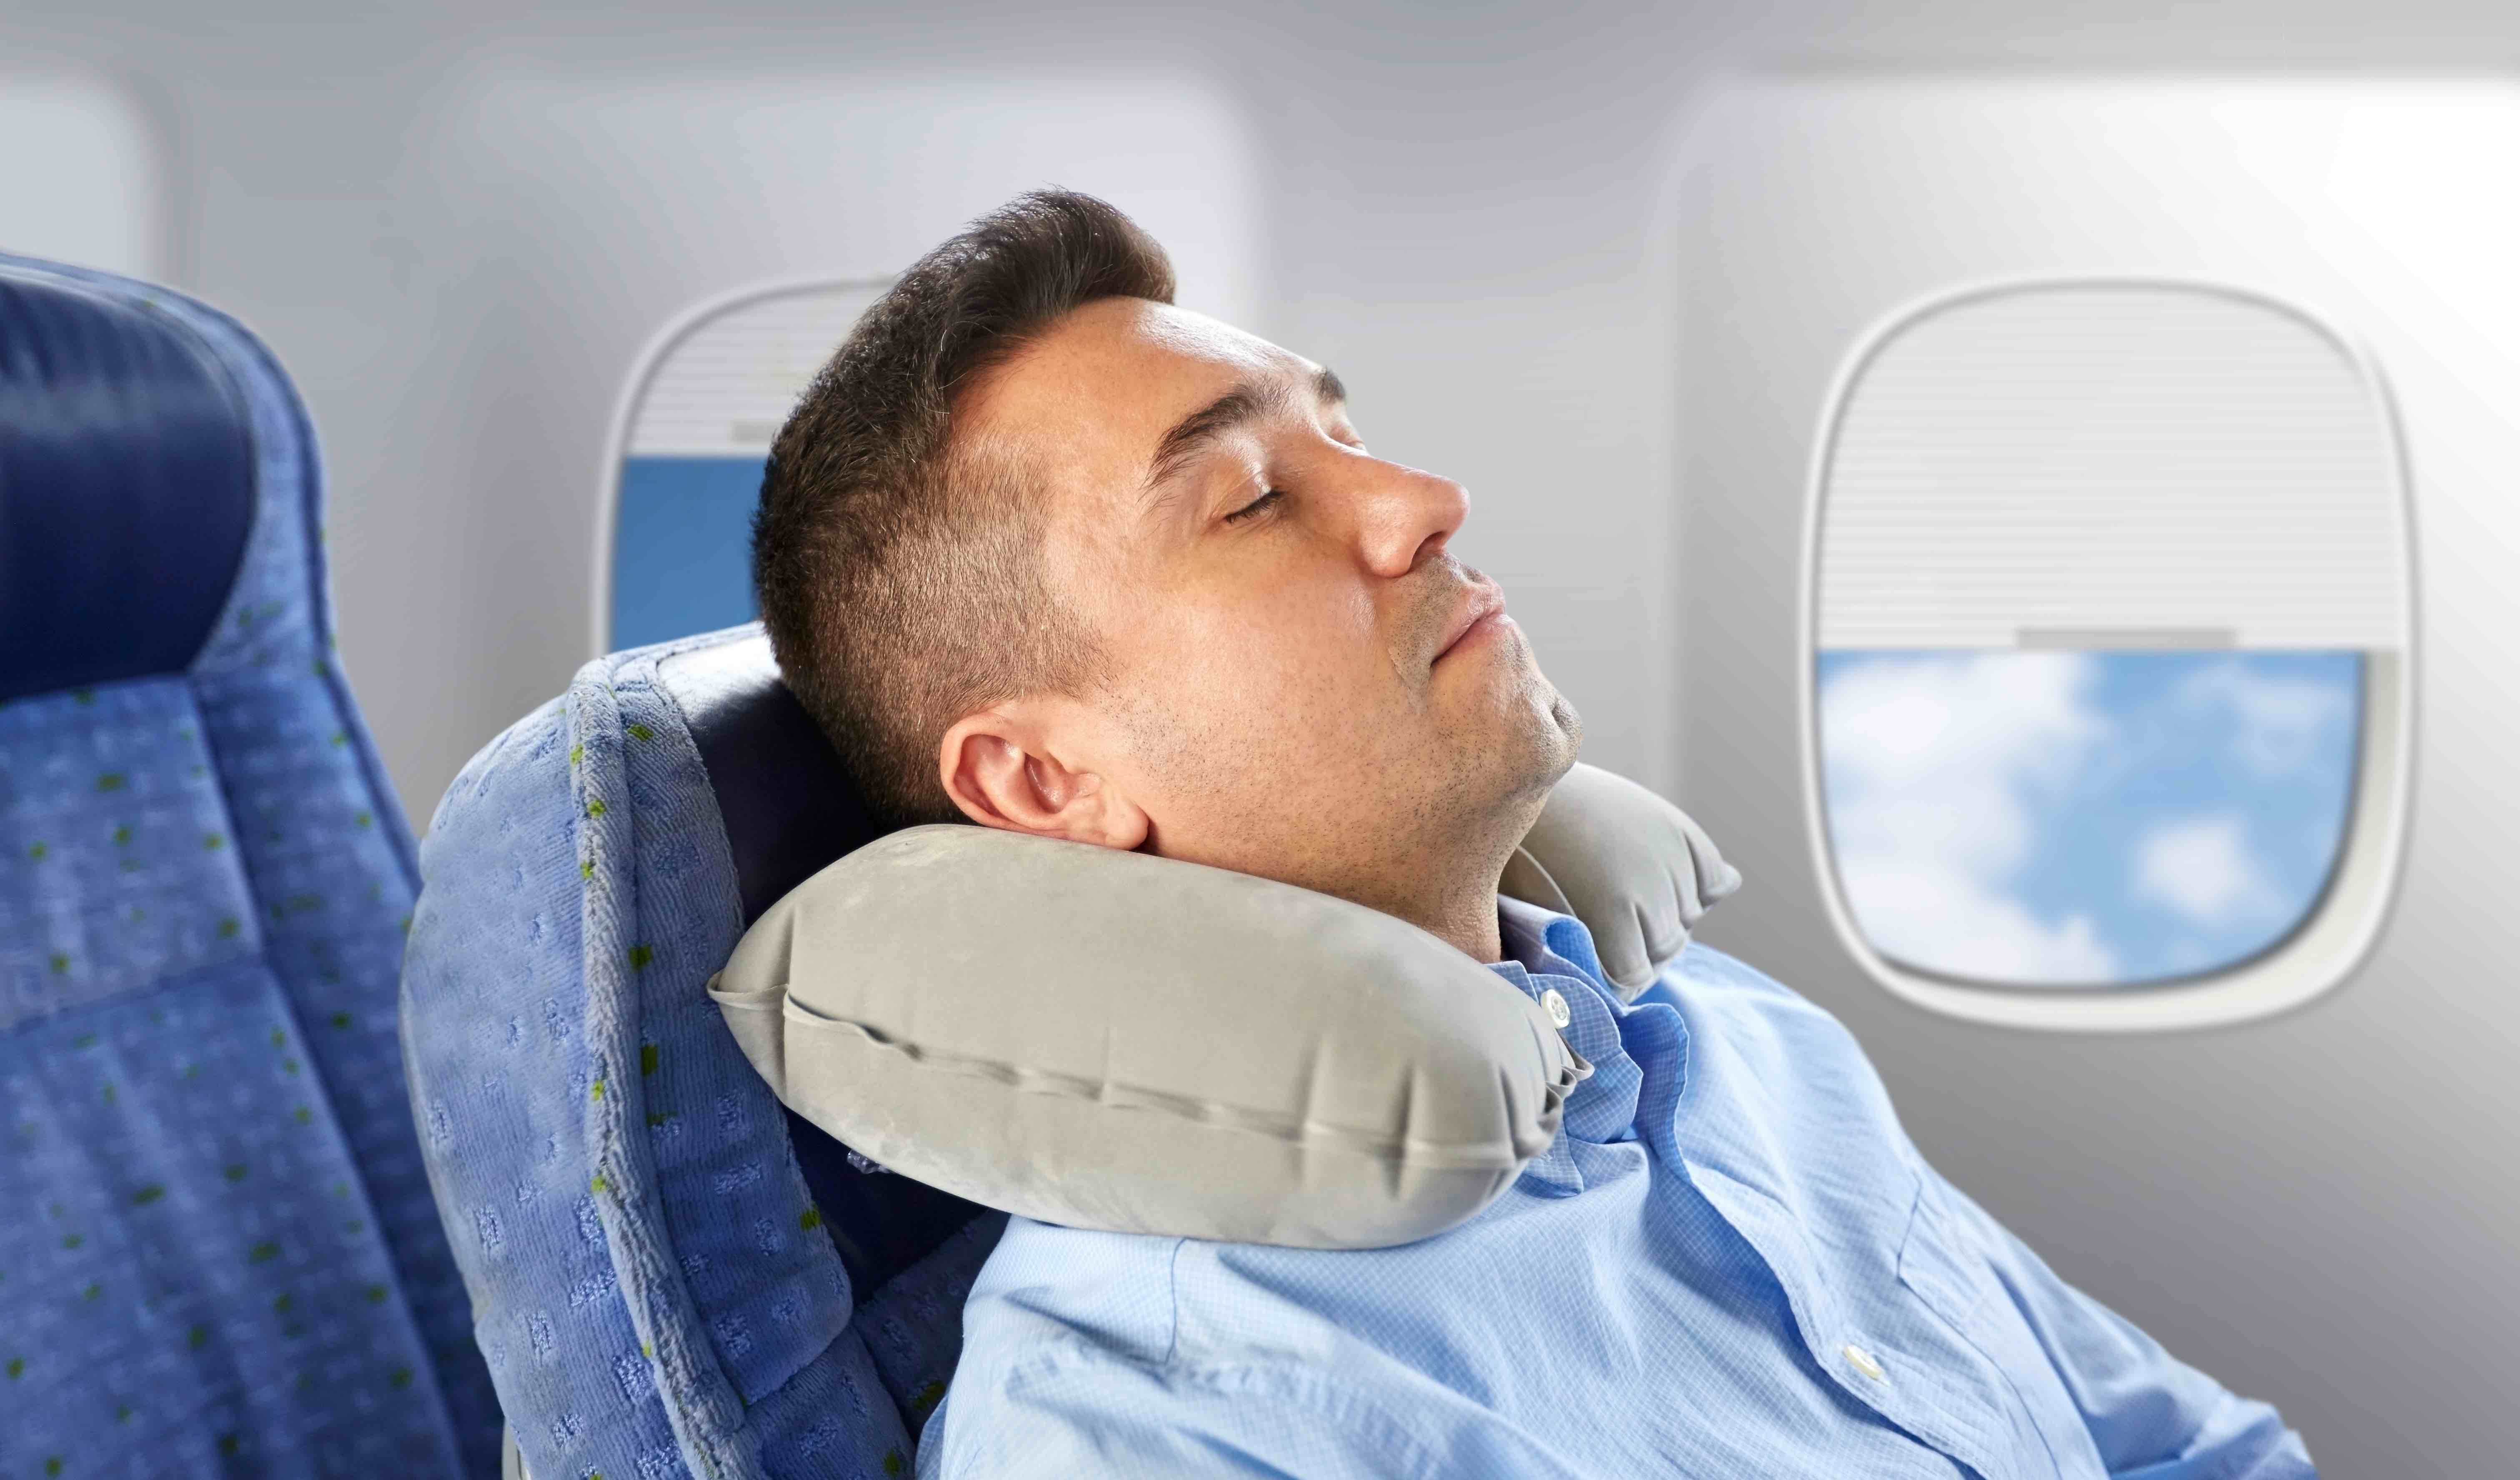 Man sleeping on plane avoid getting sick